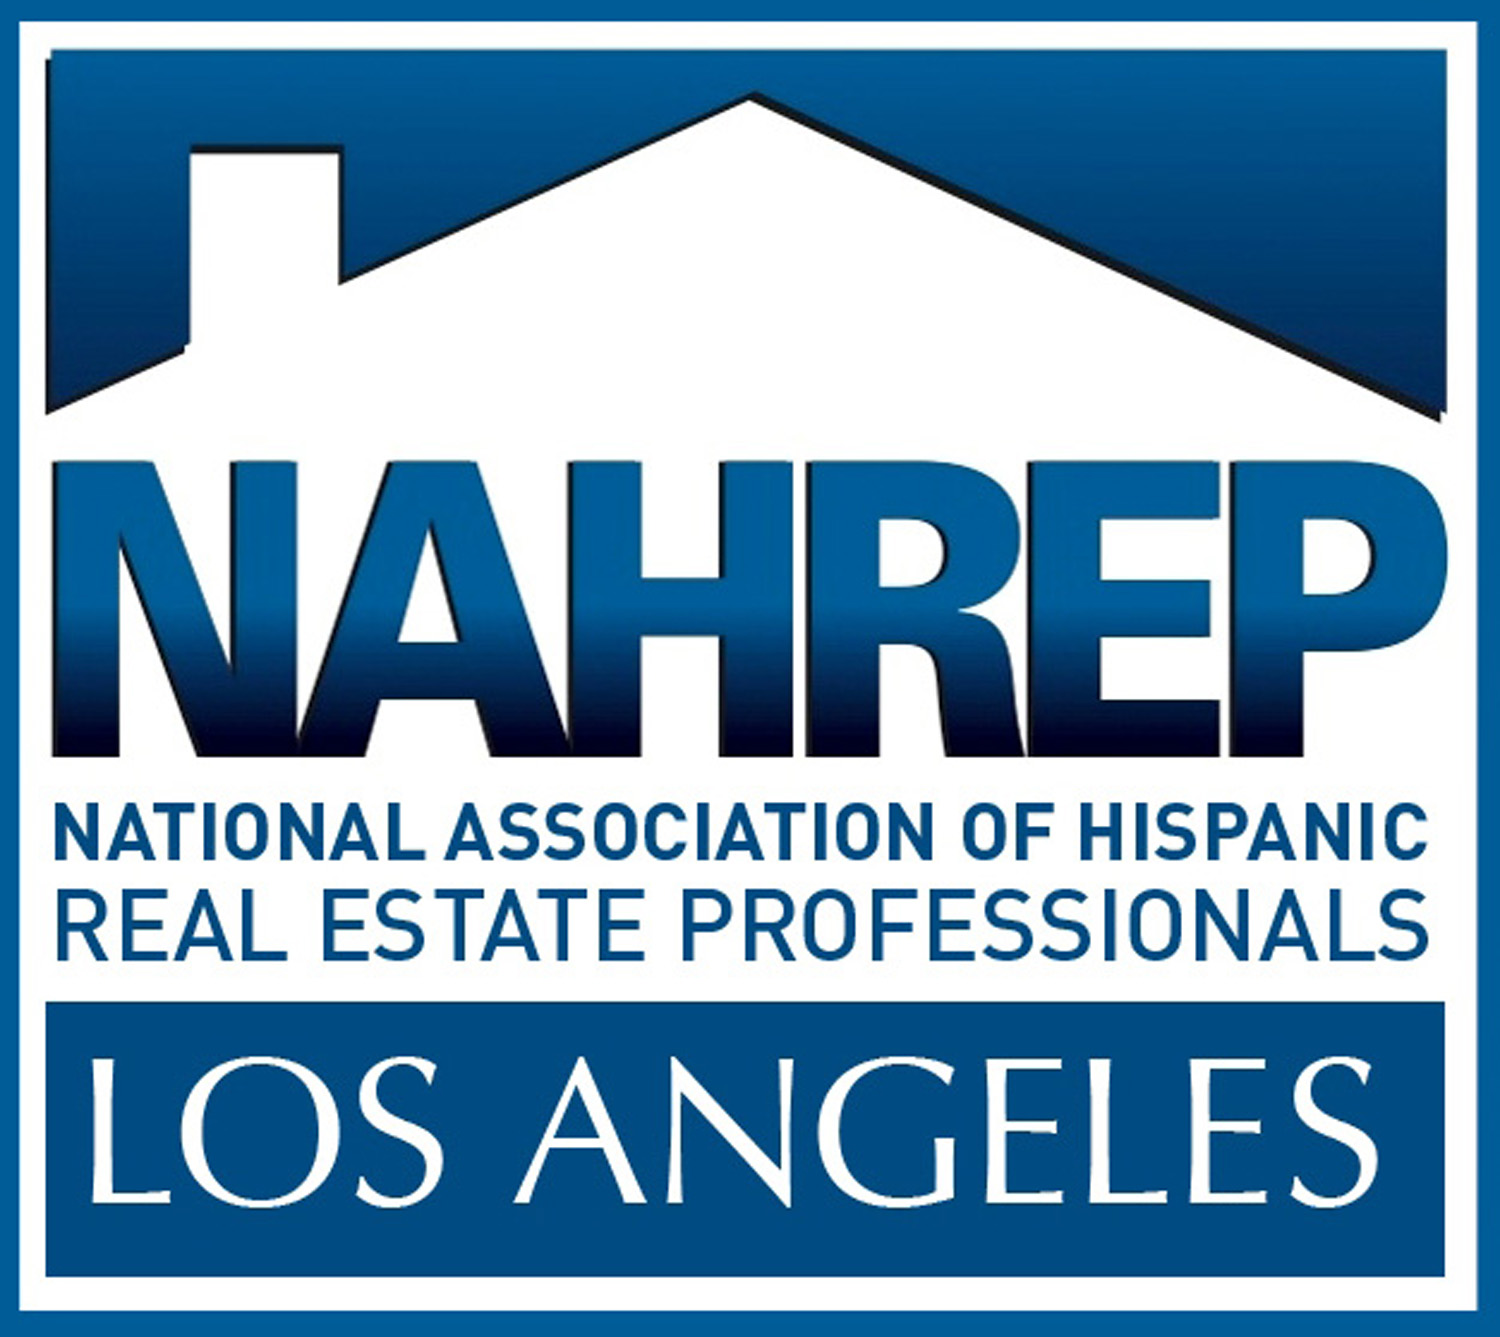 Nahrep Los Angeles Chapter And Prospect Mortgage Host. Florida State University In Tallahassee Fl. Liquid Natural Gas Cars Knights Insurance Okc. Global Threat Intelligence What Are Abortions. Does Schizophrenia Run In Families. Construction Factoring Companies. Divorce Attorney In Dallas Tx. Best Home Security Alarm System. Family Lawyer Austin Texas Bail Bonds Austin